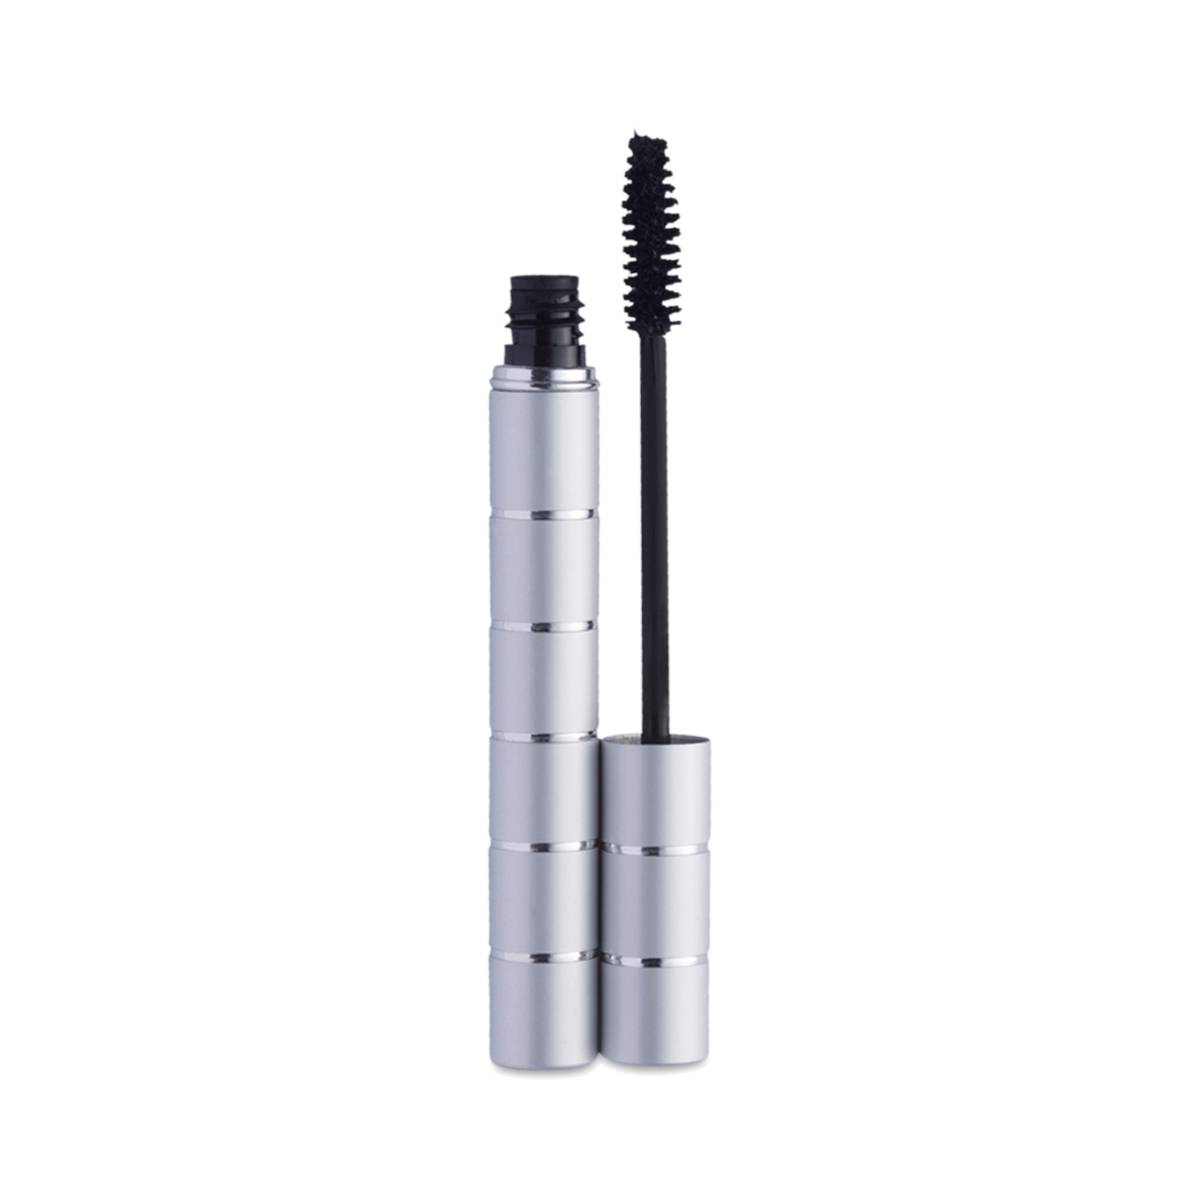 c5d8017c359 Ultimate Volume Black Mascara by Mineral Hygienics - Thrive Market